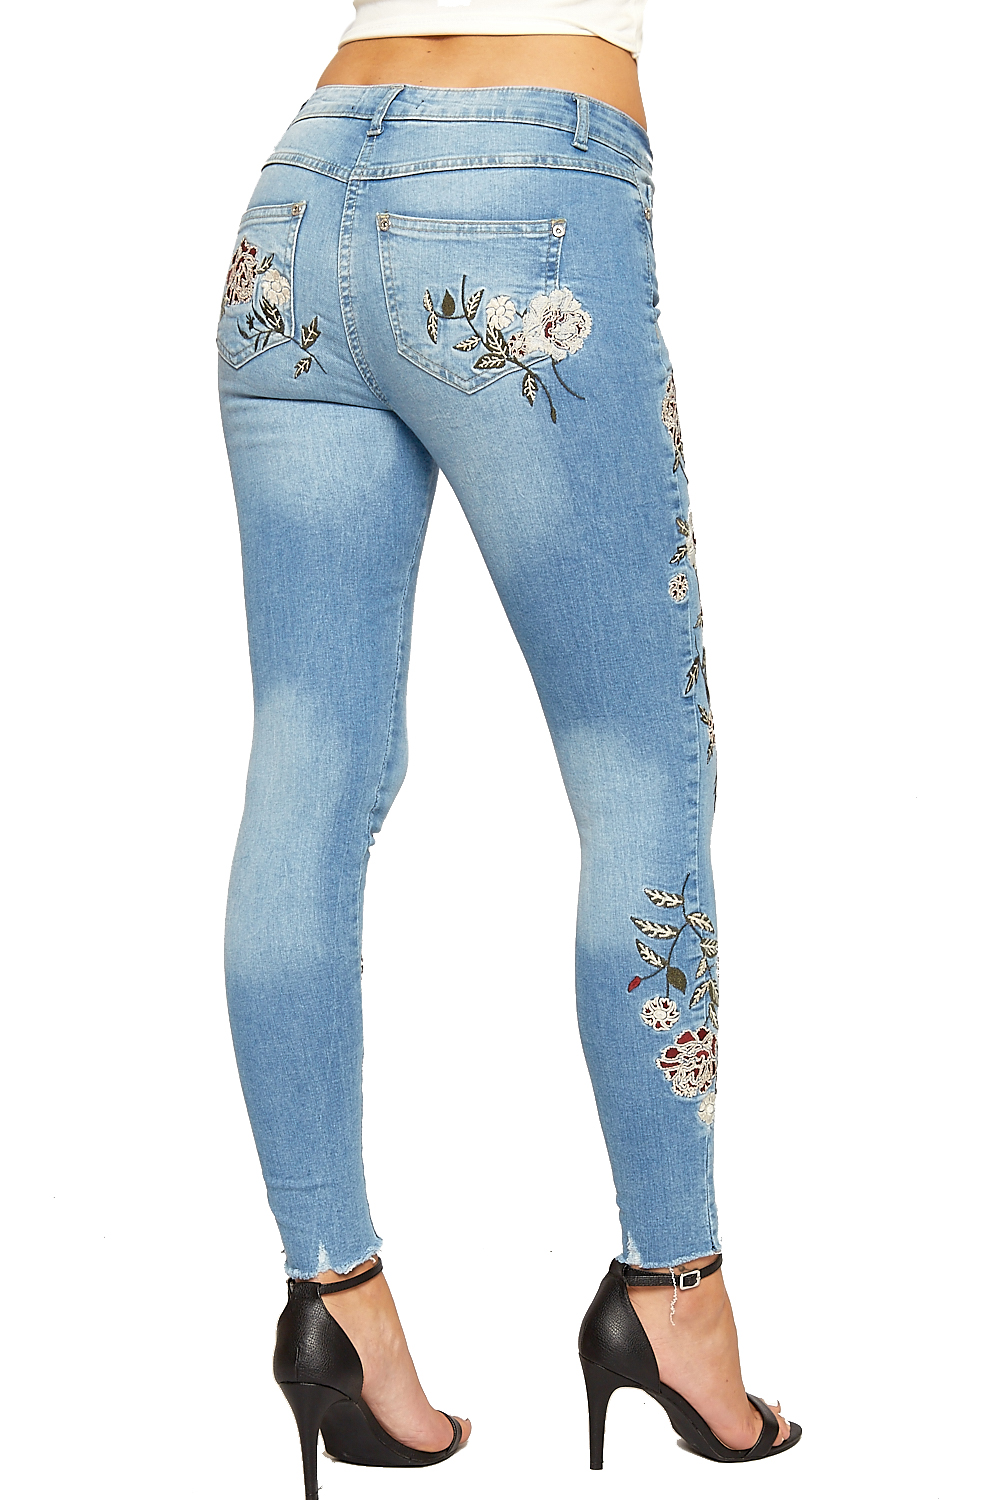 Womens denim skinny leg ankle jeans ladies floral